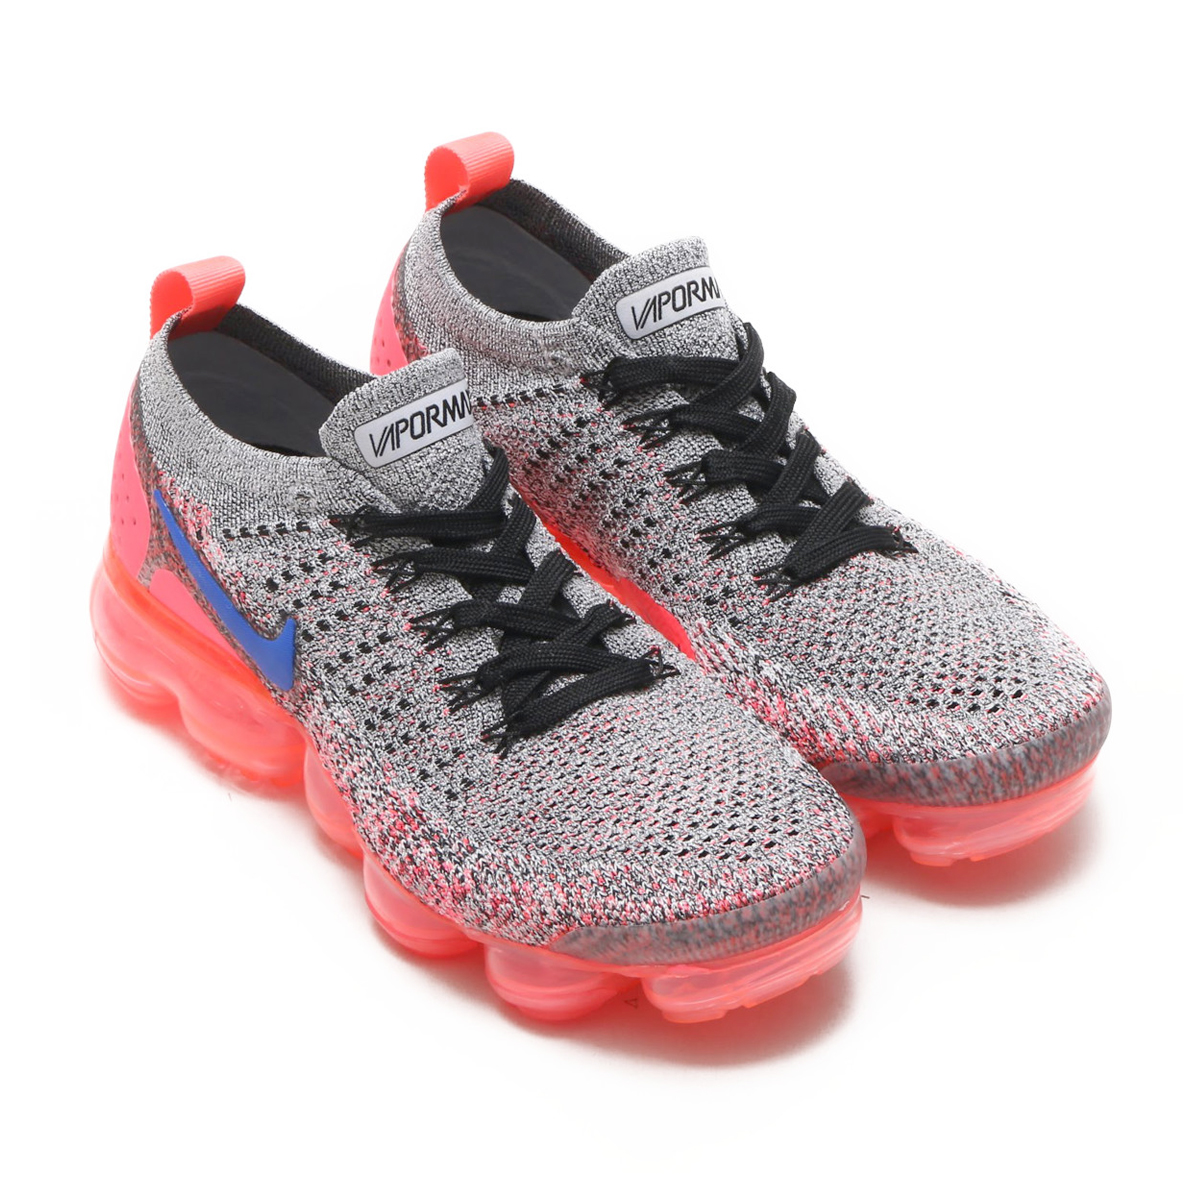 b6d8ceccaadc9 NIKE W AIR VAPORMAX FLYKNIT 2 (Nike women air vapor max fried food knit 2) ( WHITE ULTRAMARINE-HOT PUNCH-BLACK) 18SU-S